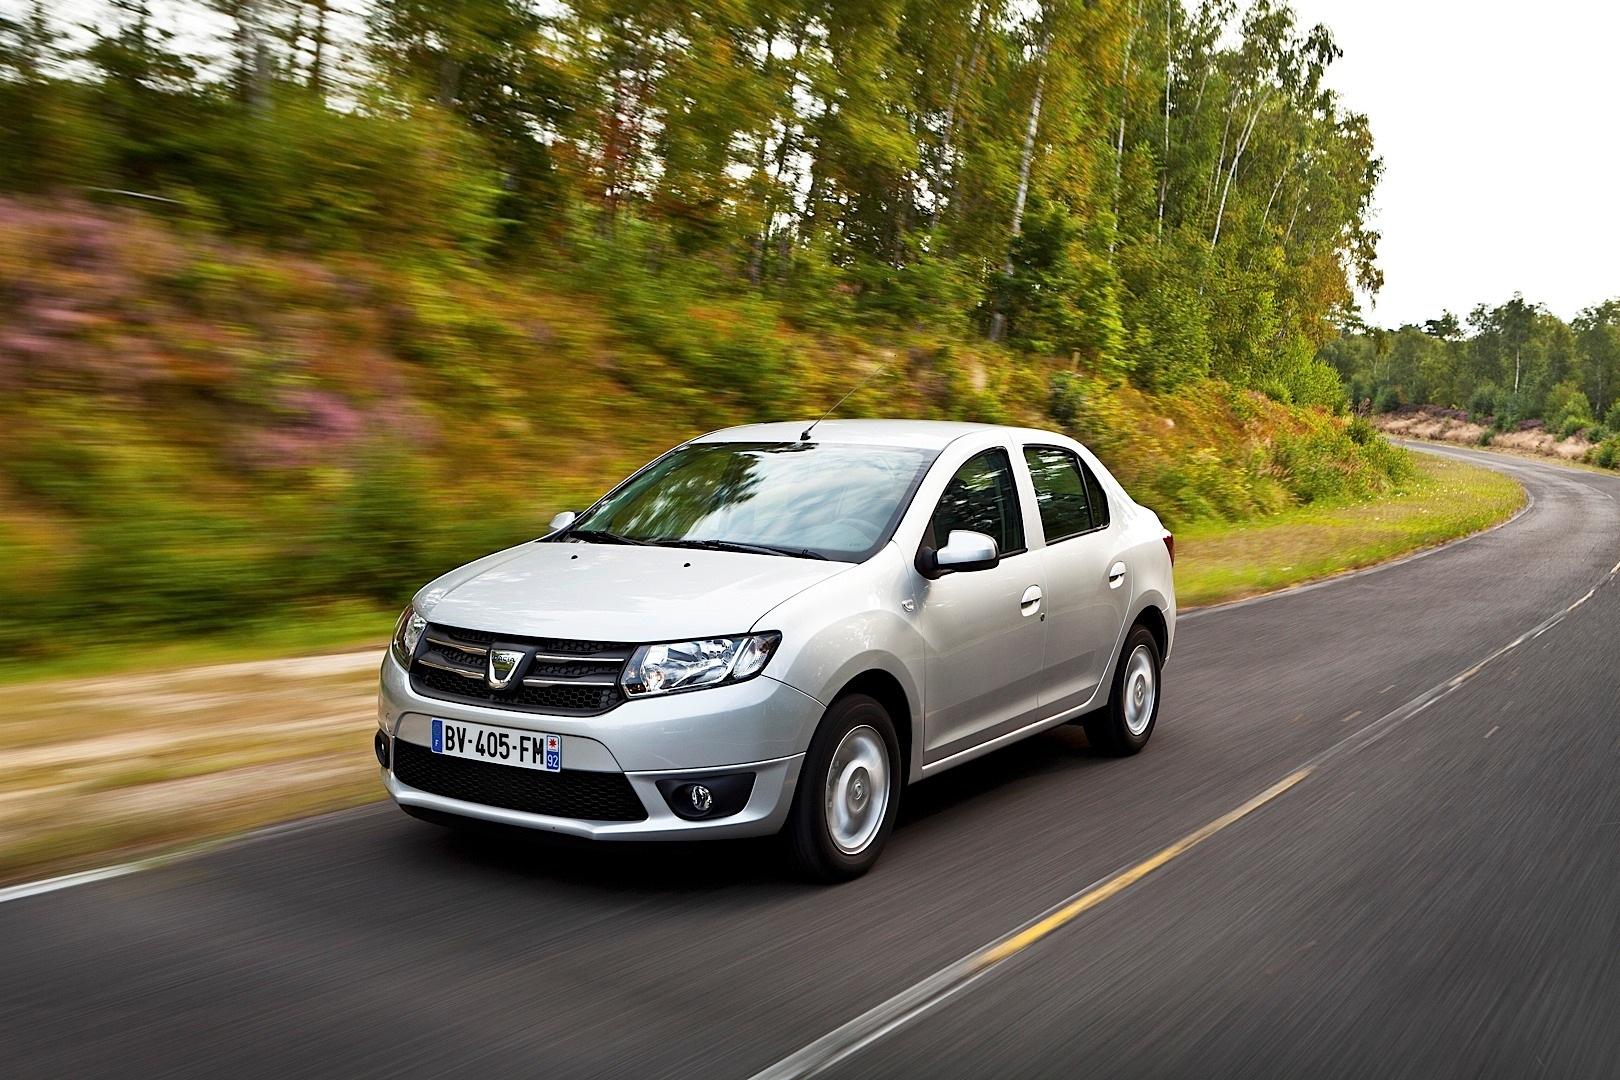 new dacia logan and sandero photos become official autoevolution. Black Bedroom Furniture Sets. Home Design Ideas